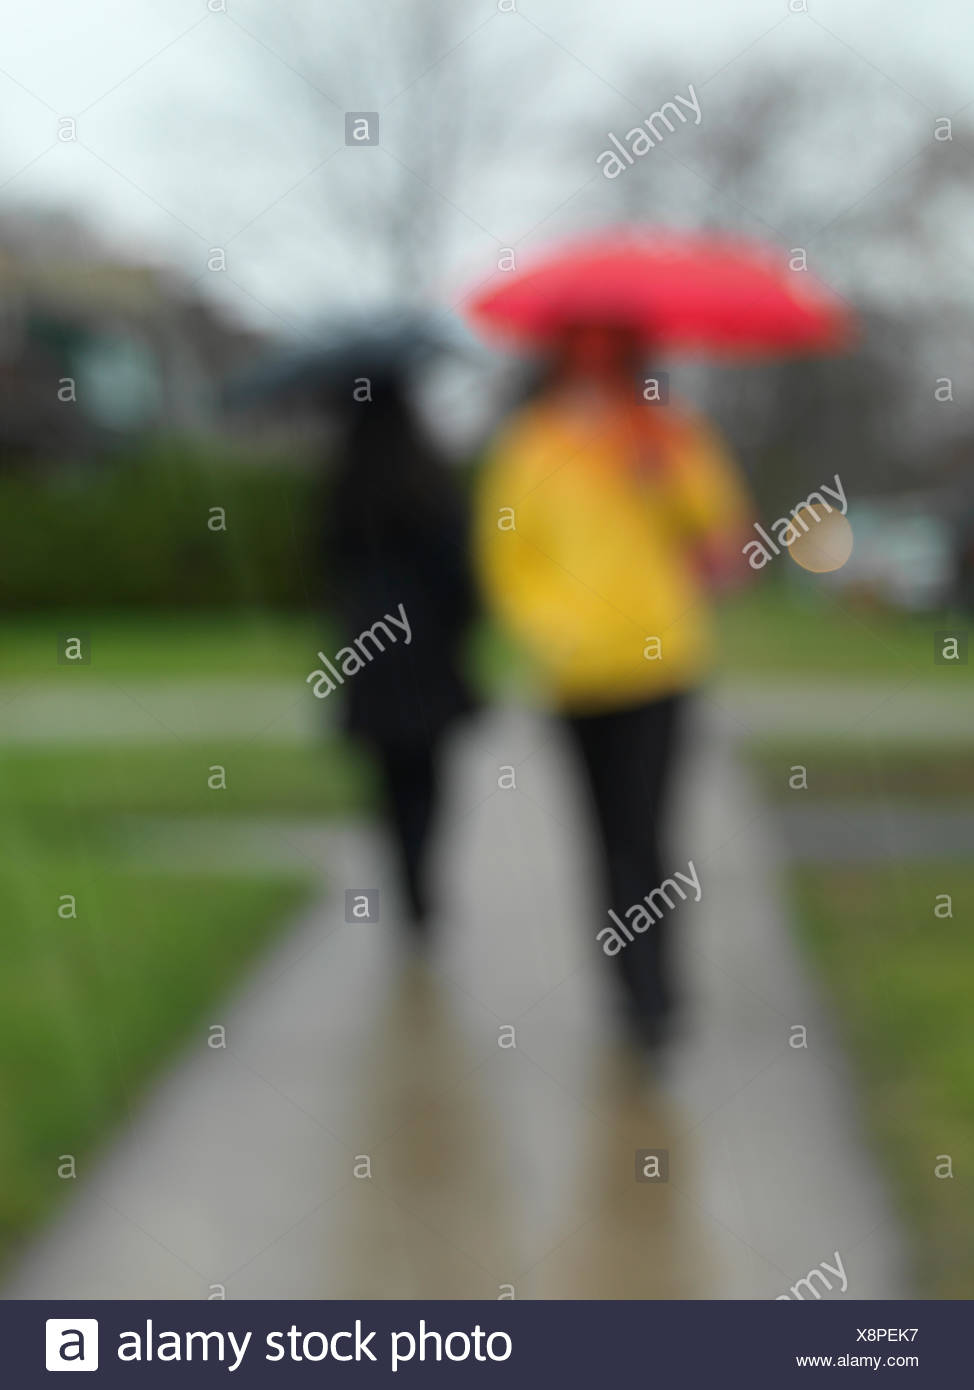 People with umbrellas on a sidewalk in the rain, blurred Stock Photo